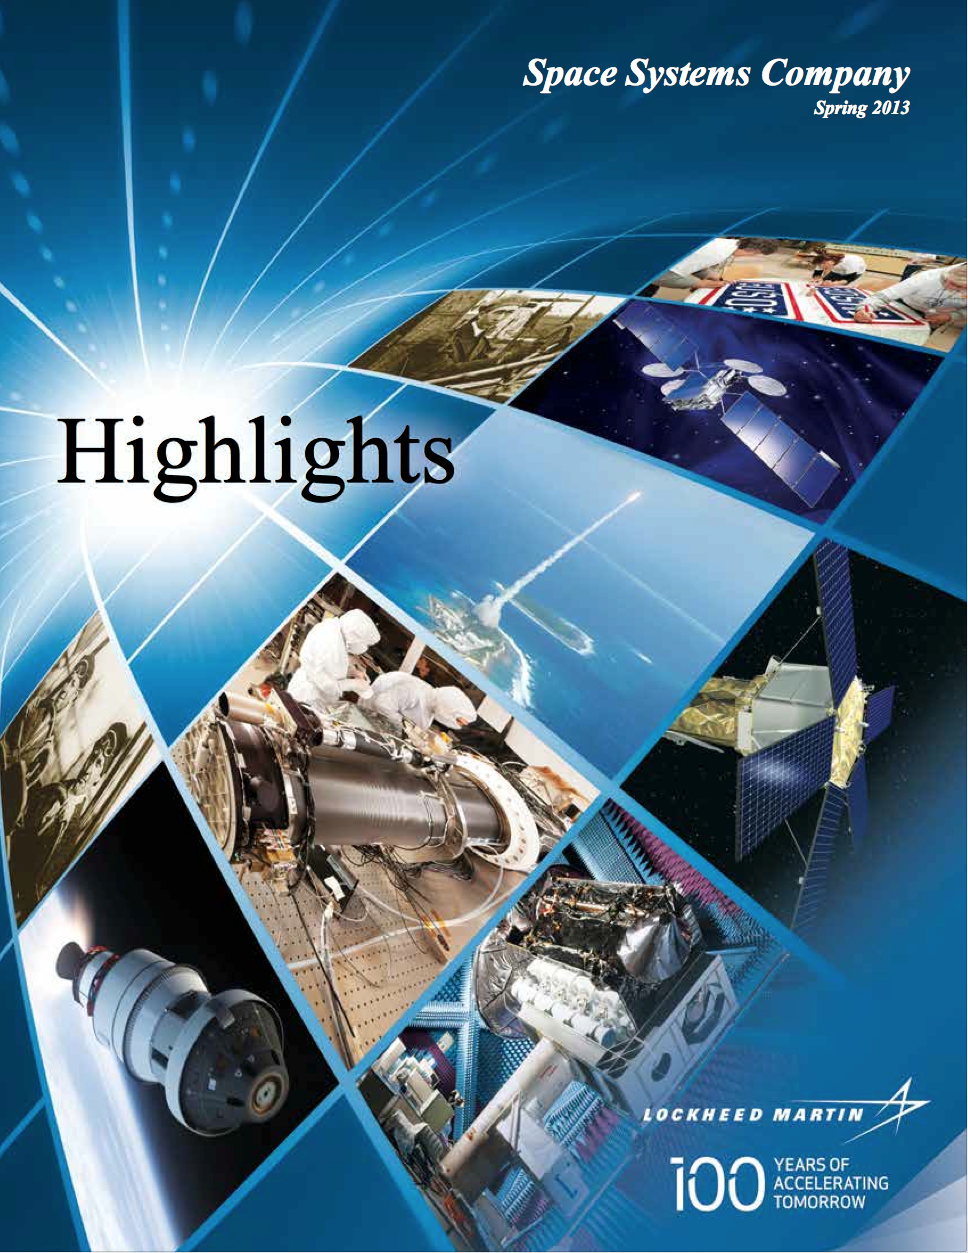 2013 edition of the annual publications called Highlights.